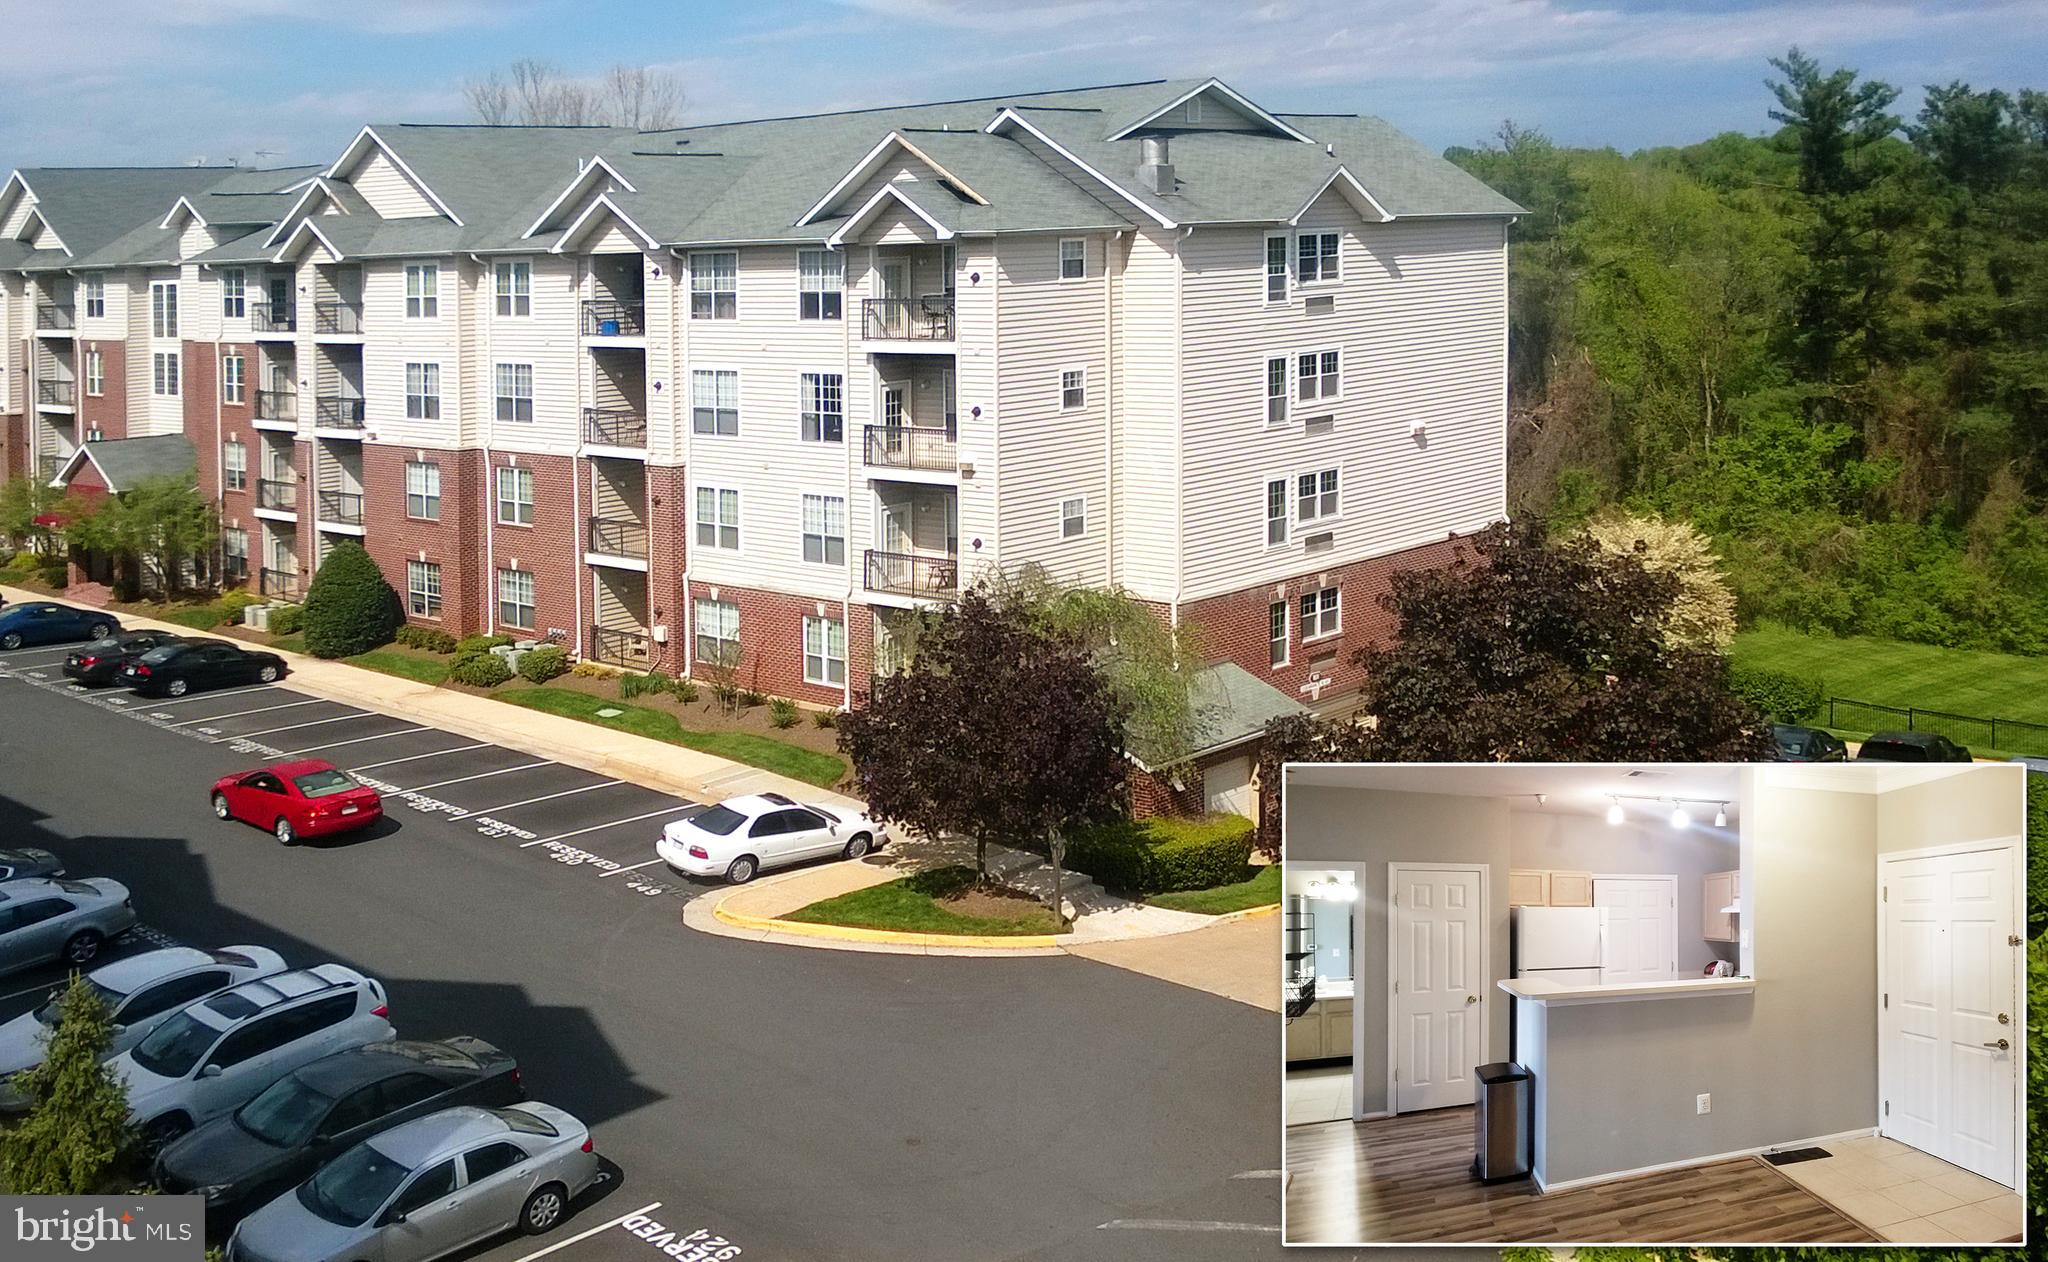 Great ground level condo - walk to McLean Silver Line metro + Wegmans across the street opening soon. The unit has laminate floors and newer windows and is in a controlled access building. Larger 735 sqft Danielle model. 1 reserved parking spot + 2 guest tags. The Gates of McLean is a gated community with great amenities like an outdoor swimming pool, gym, clubhouse, sports court, grill area and walking paths. Minutes to everything in Tysons and minutes from toll road. Pictures are from before current tenant.